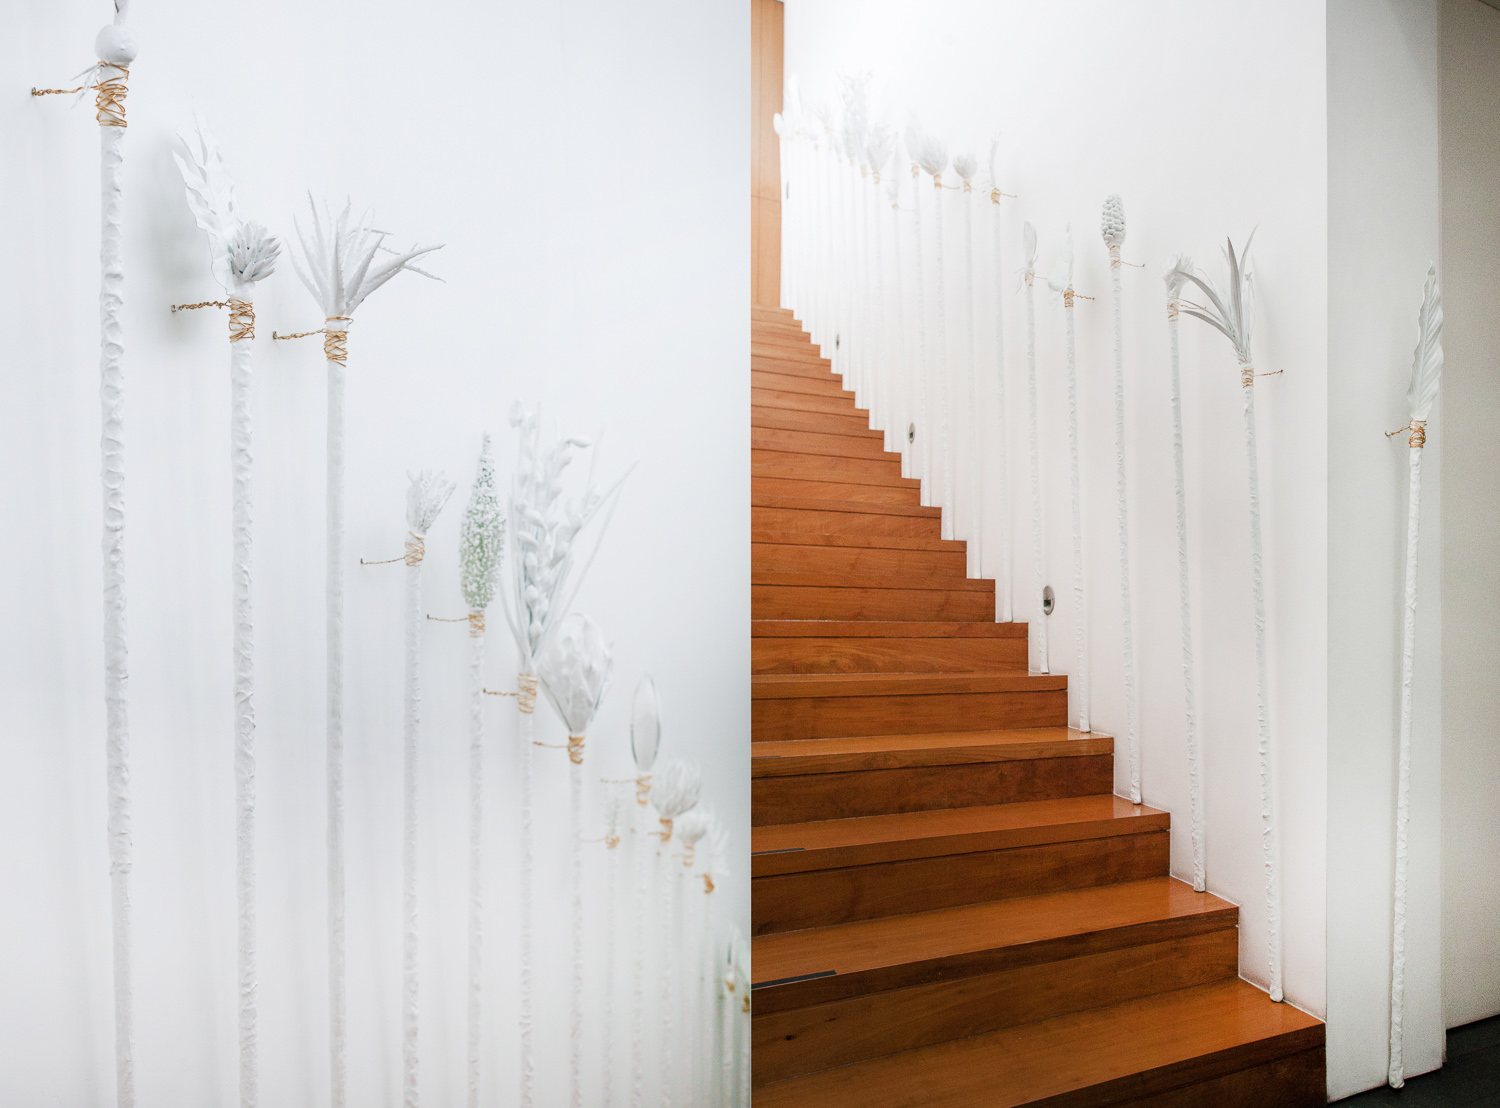 Patricia Perez Eustaquio, 'Untitled (The Hunters)', 2016, plastic plants, house paint, PVC, epoxy, gold aluminium wire, dimensions variable. Image courtesy of Silverlens.